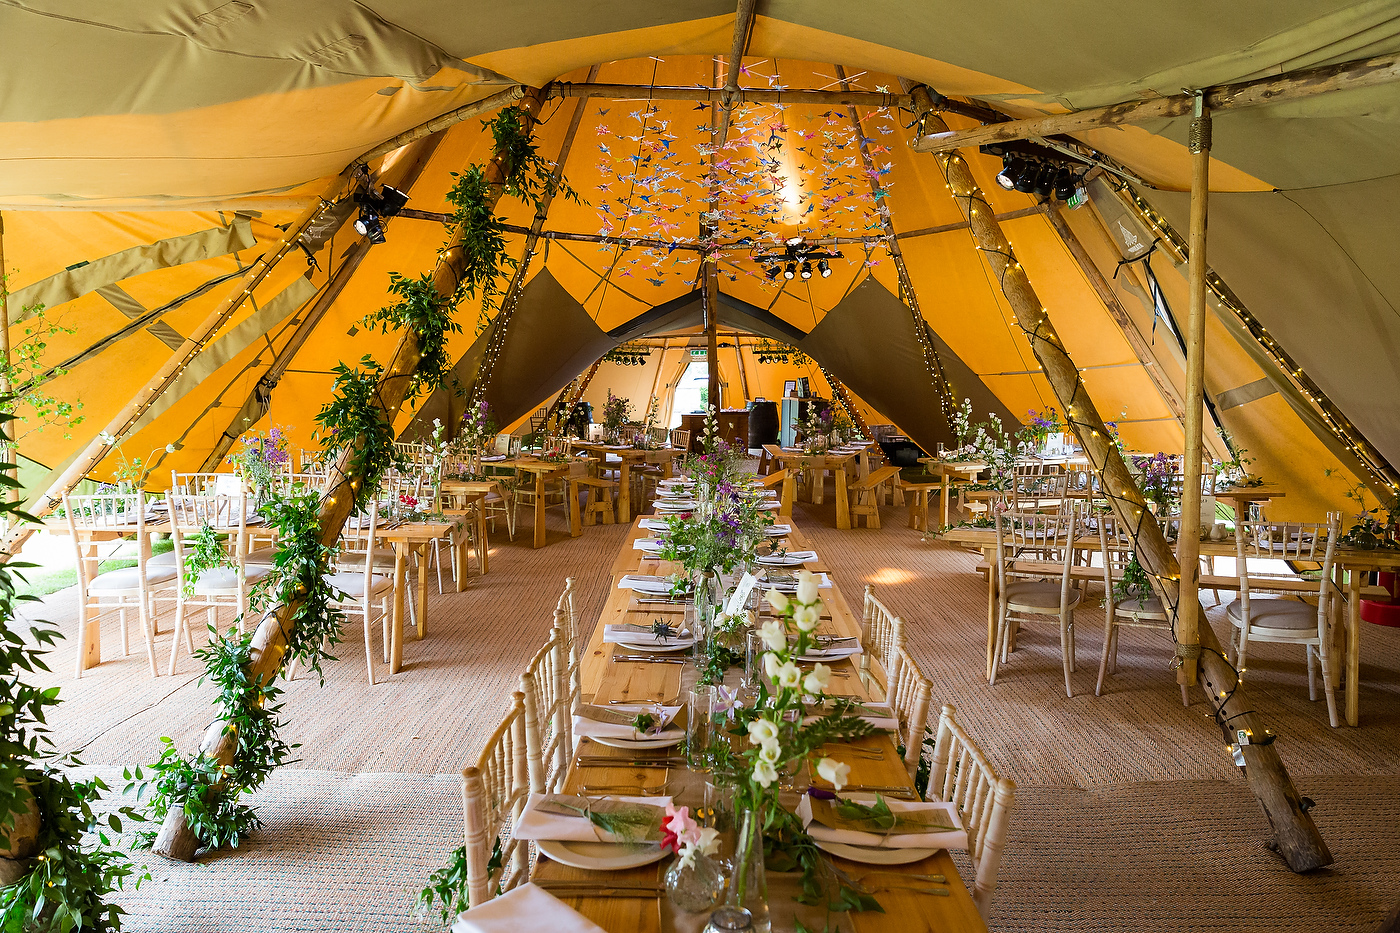 Harriet & William's PapaKåta Teepee Wedding at Gilmerton House captured by First Light Photography- 1,000 origami cranes decoration